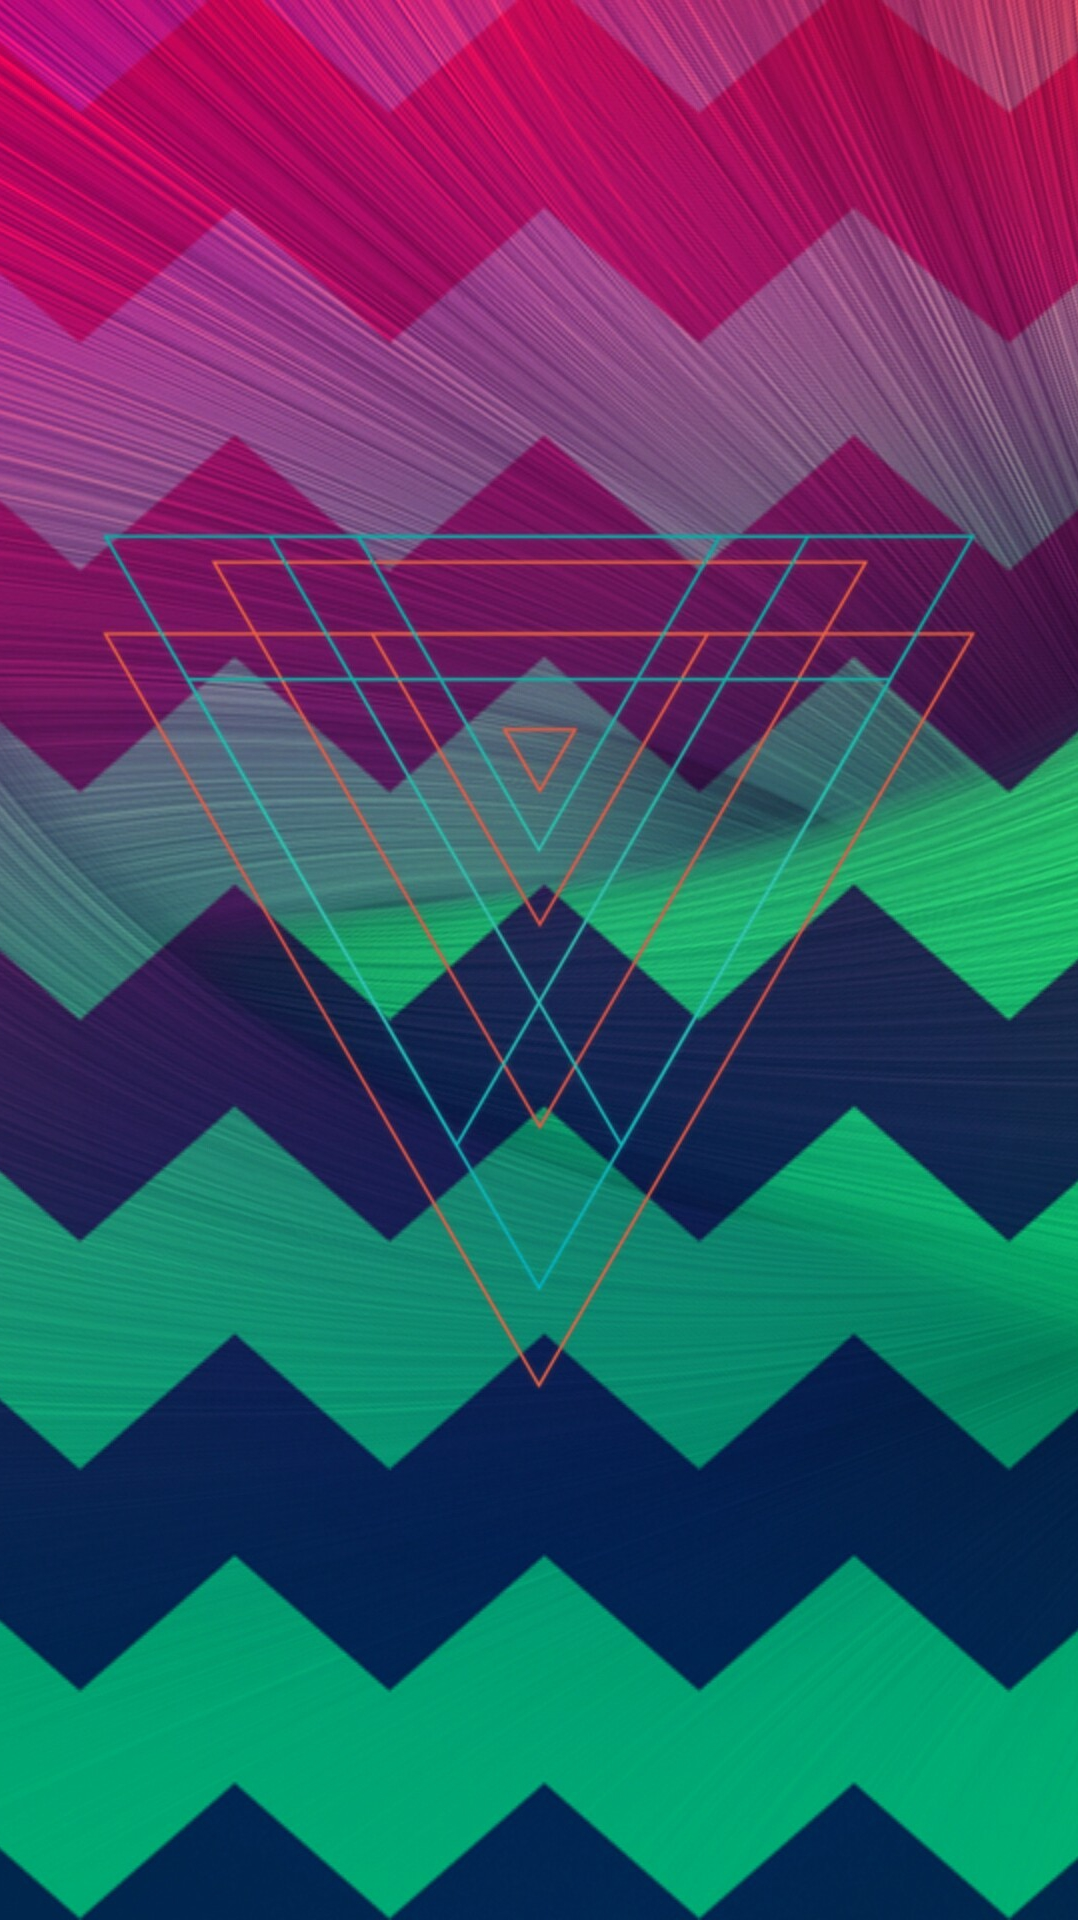 Triangle-Art-Wallpaper-iPhone-Wallpaper - iPhone Wallpapers